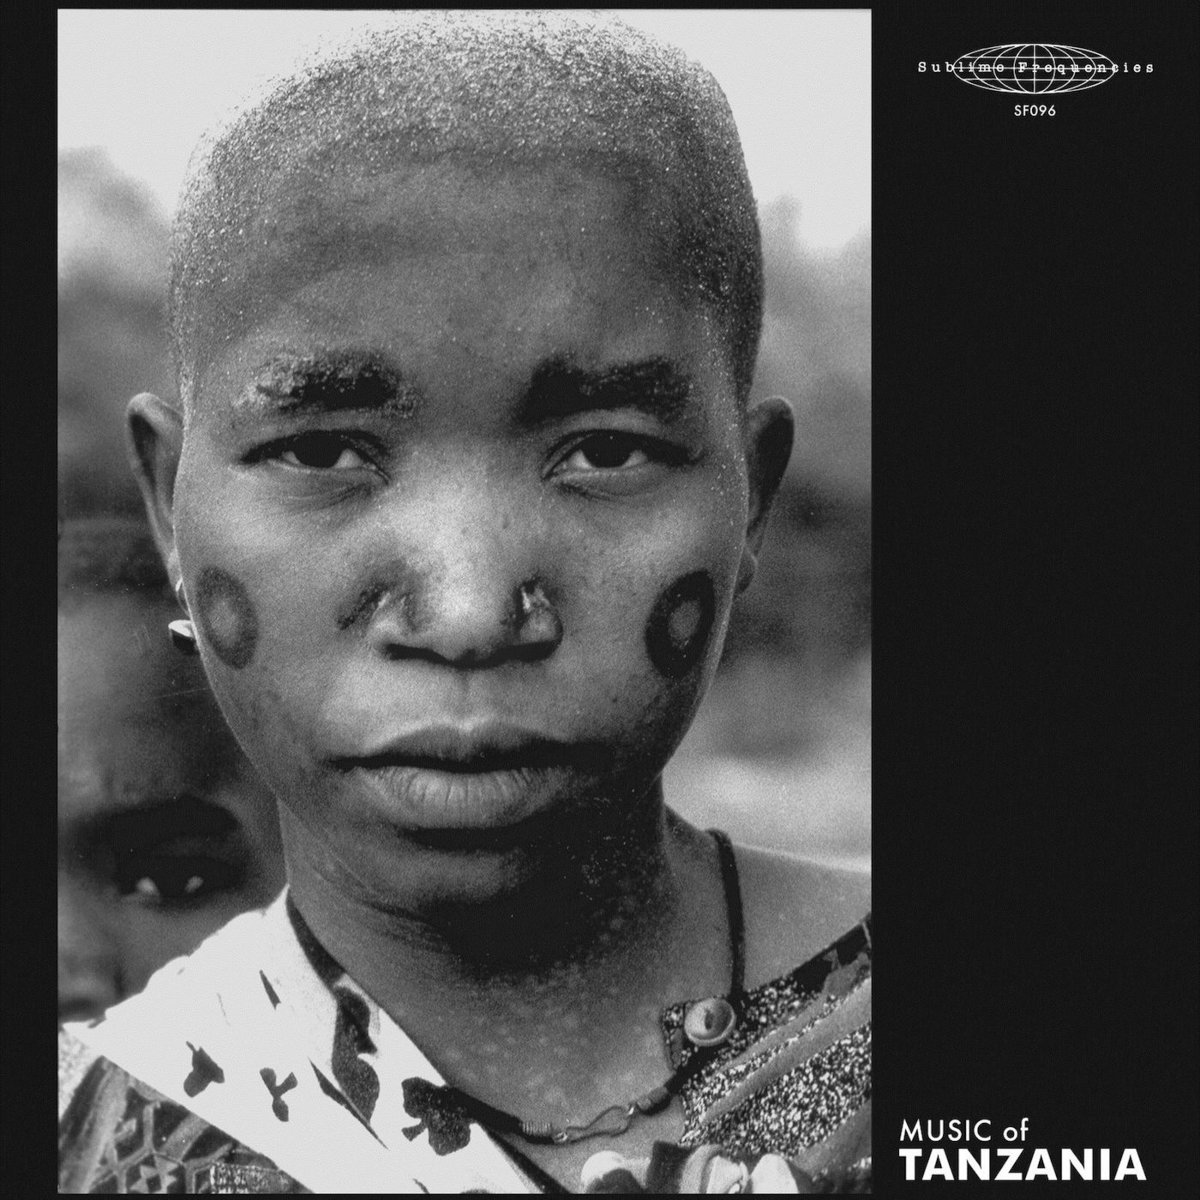 Music of Tanzania | Sublime Frequencies